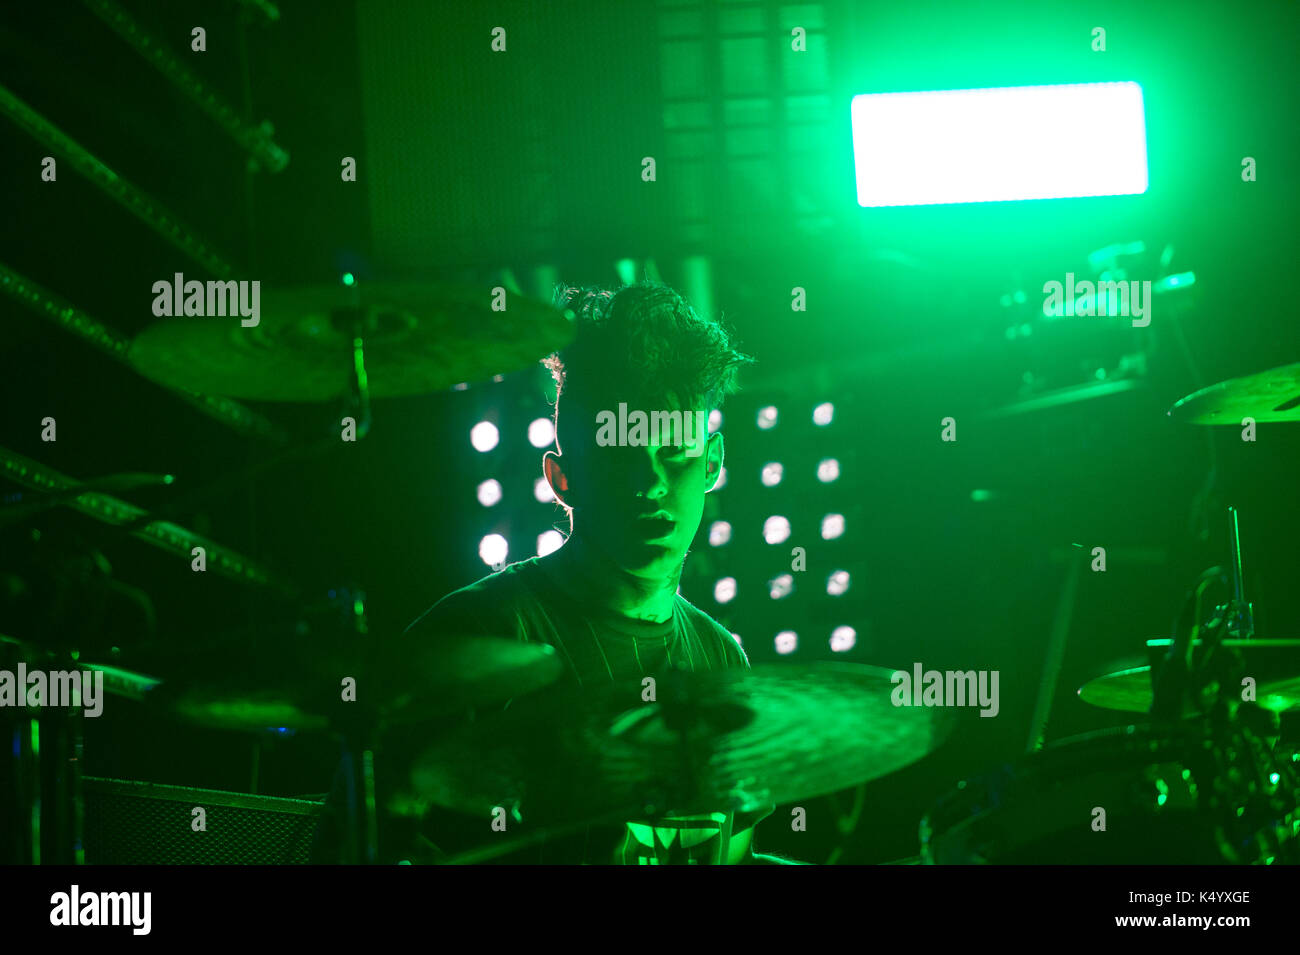 06 Sep 2017 - The Kolors  on stage  at ARENA 45  @ 45°NORD Entertainment Center, Moncalieri, Turin, with their 'The Kolors Live 2017' - Stock Image